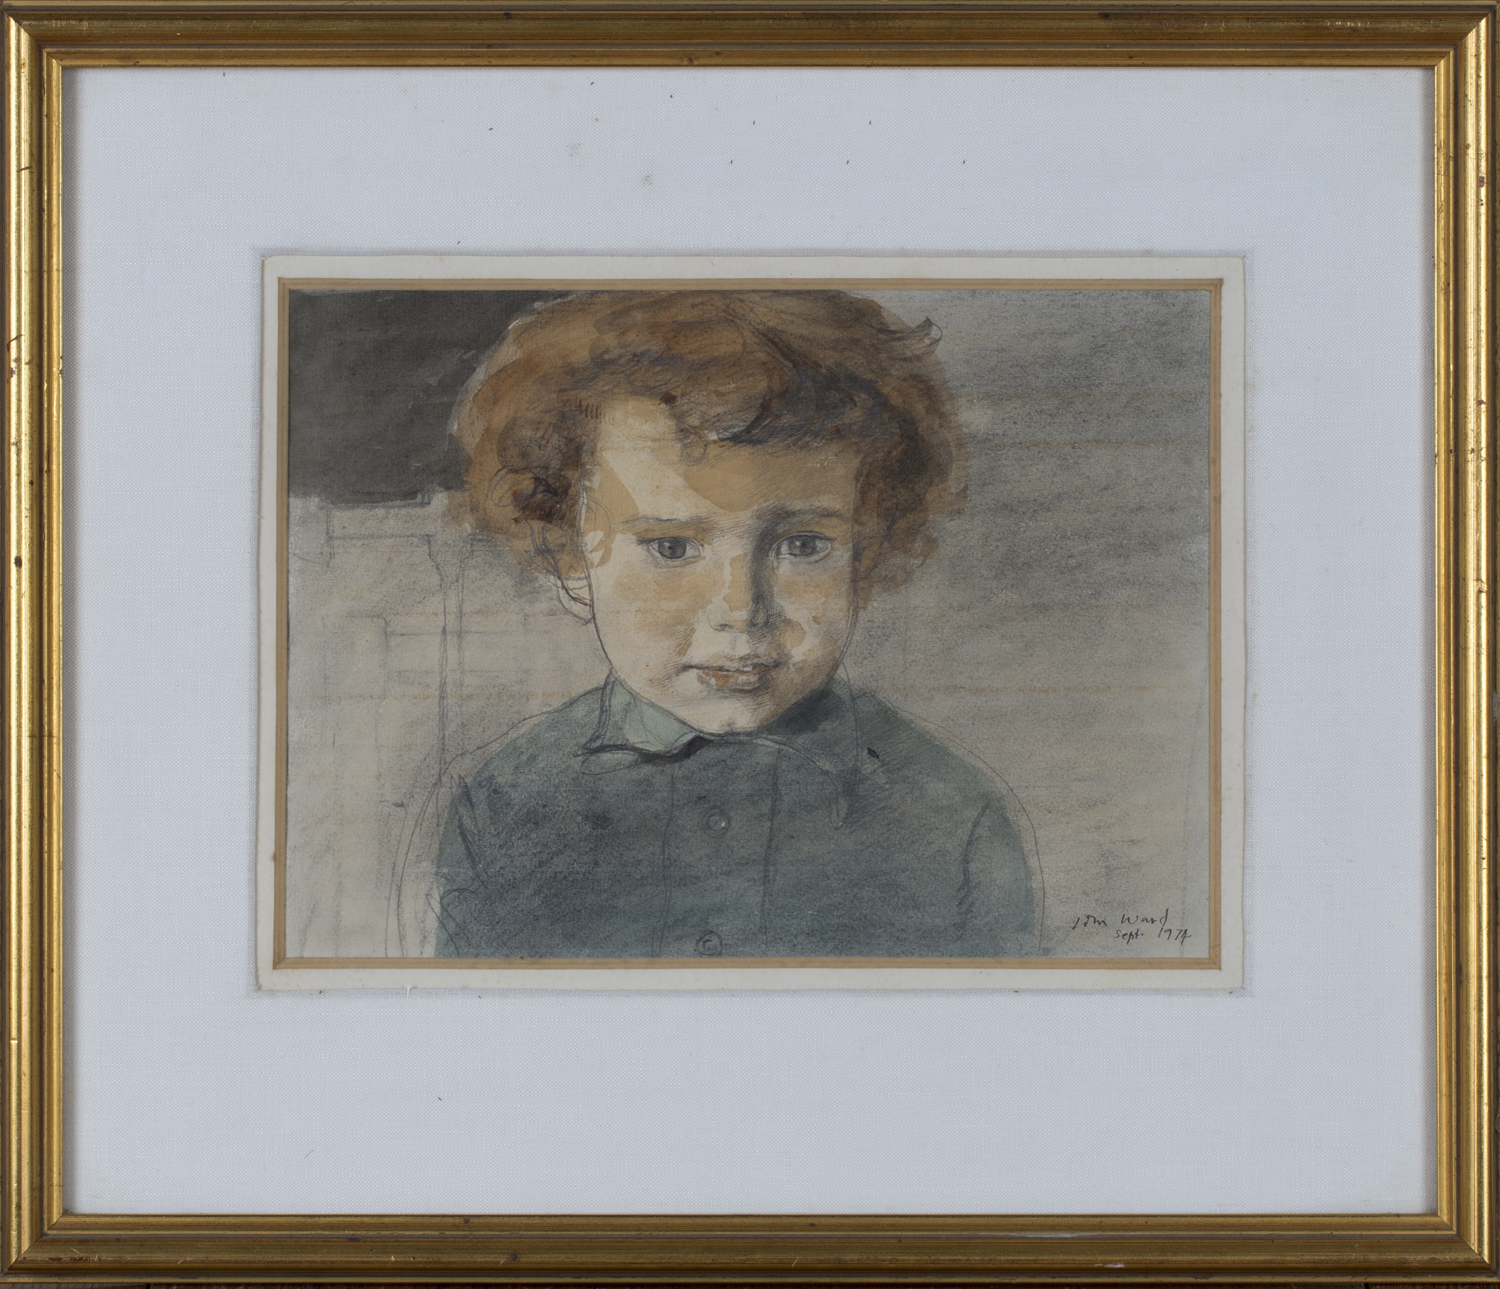 Lot 54 - John Stanton Ward - Portrait of a Boy, watercolour with ink, signed and dated 1974, 21.5cm x 30cm,